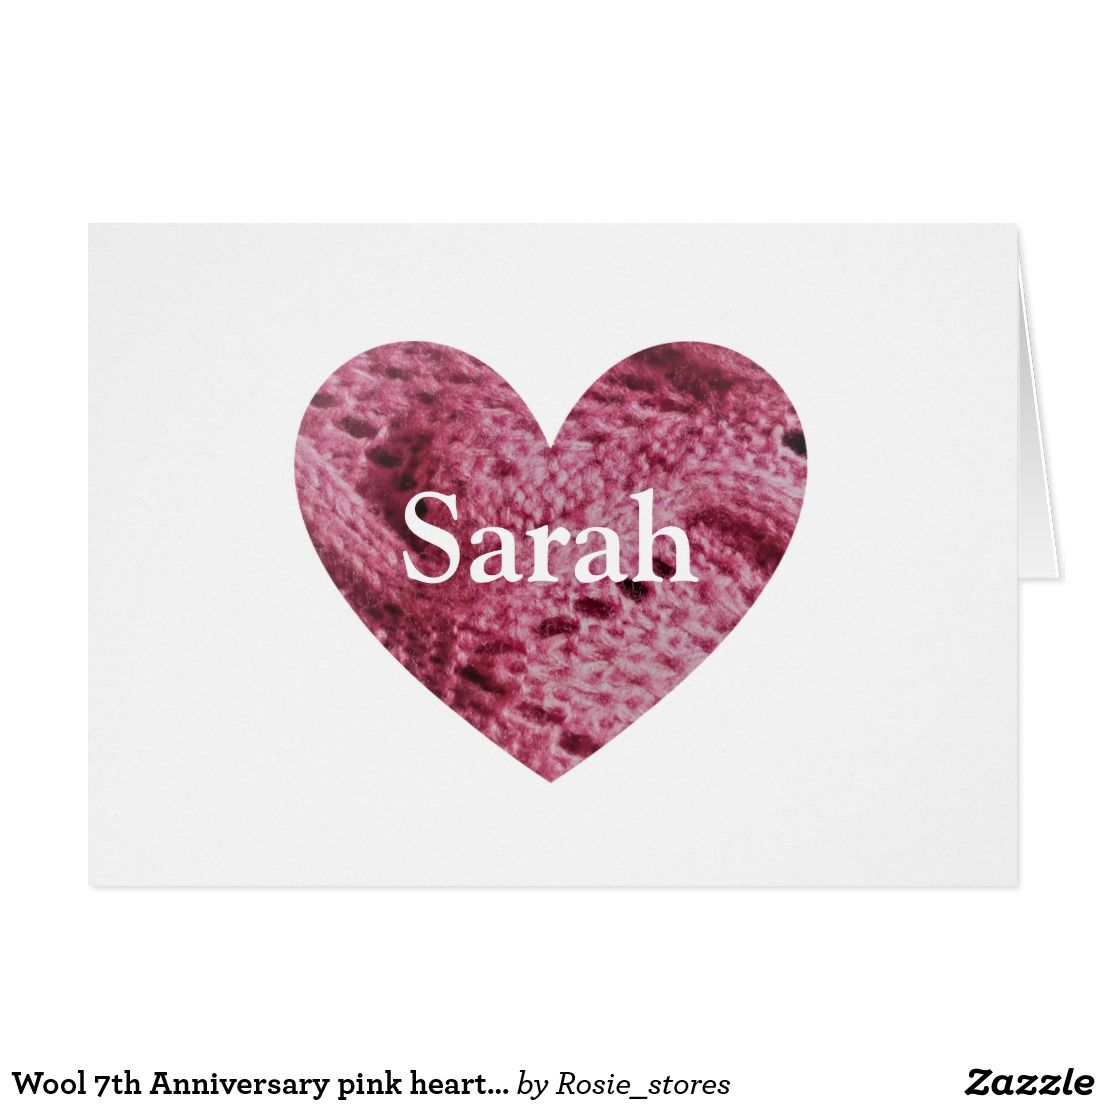 Wool 7th Anniversary pink heart card